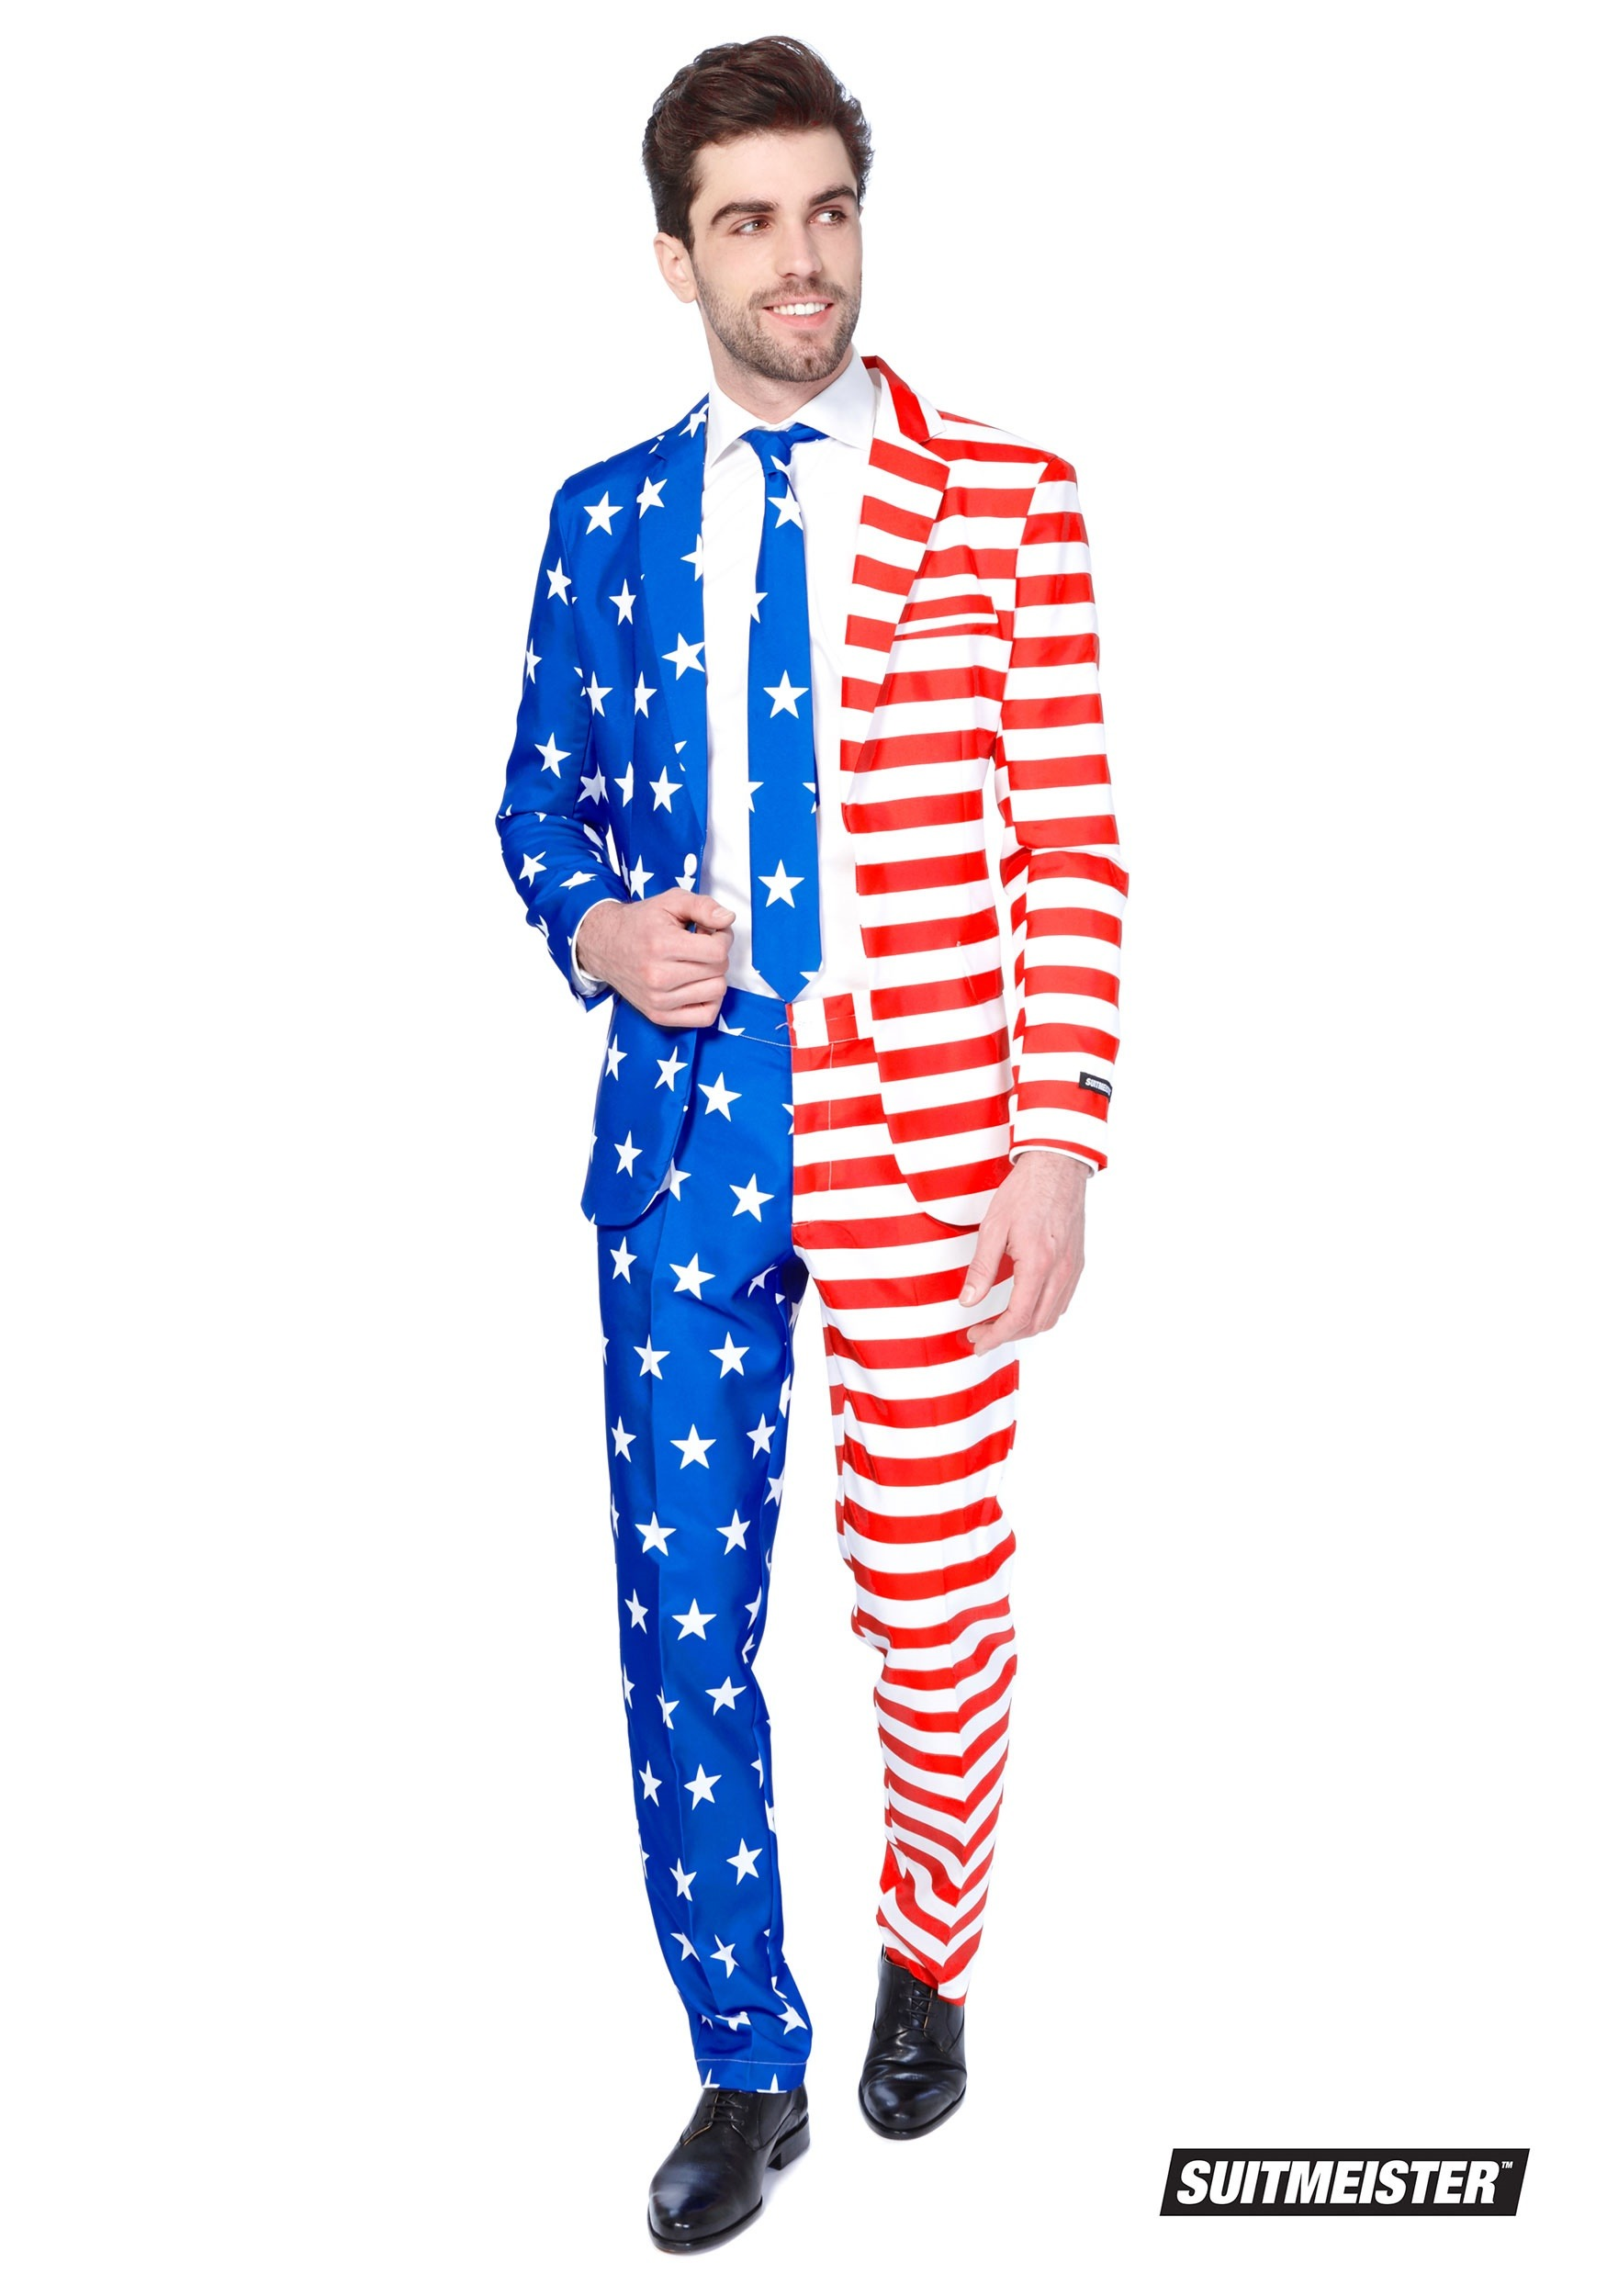 Men's USA Suitmeister Suit